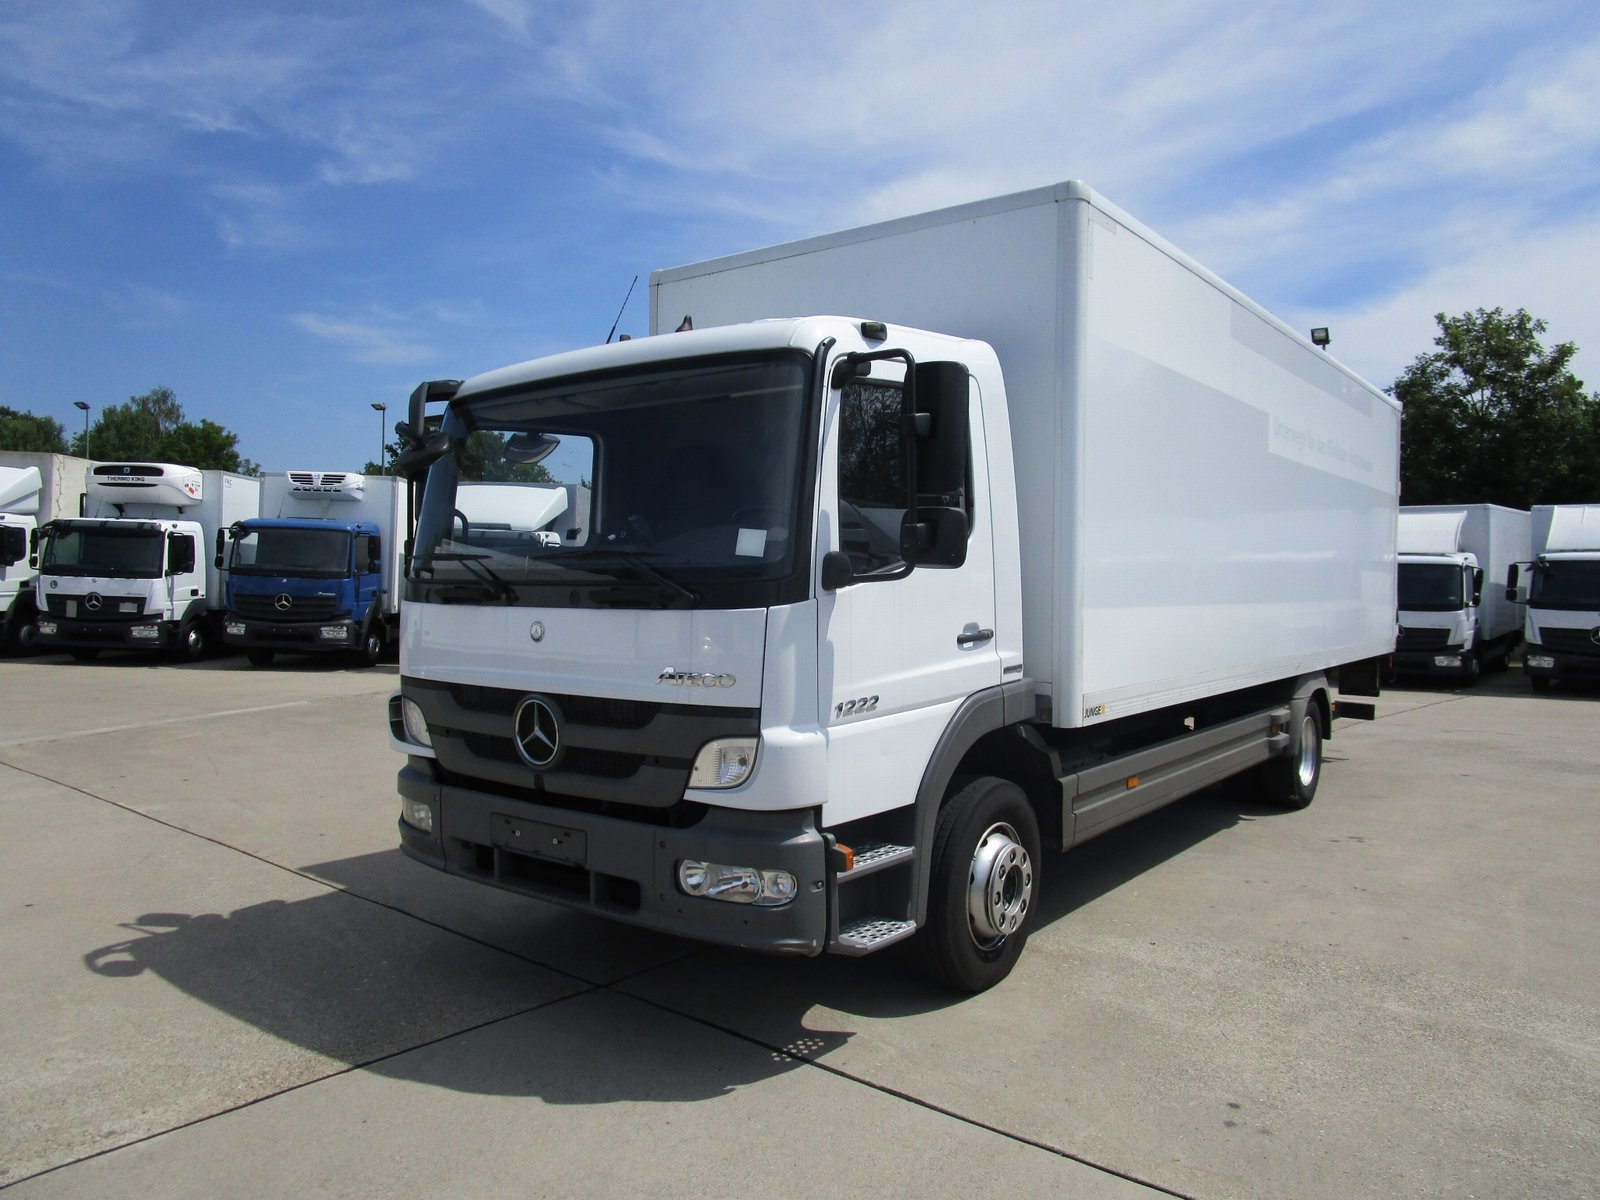 ATEGO III 1222 L Koffer 7,20 m LBW 1,5 to.